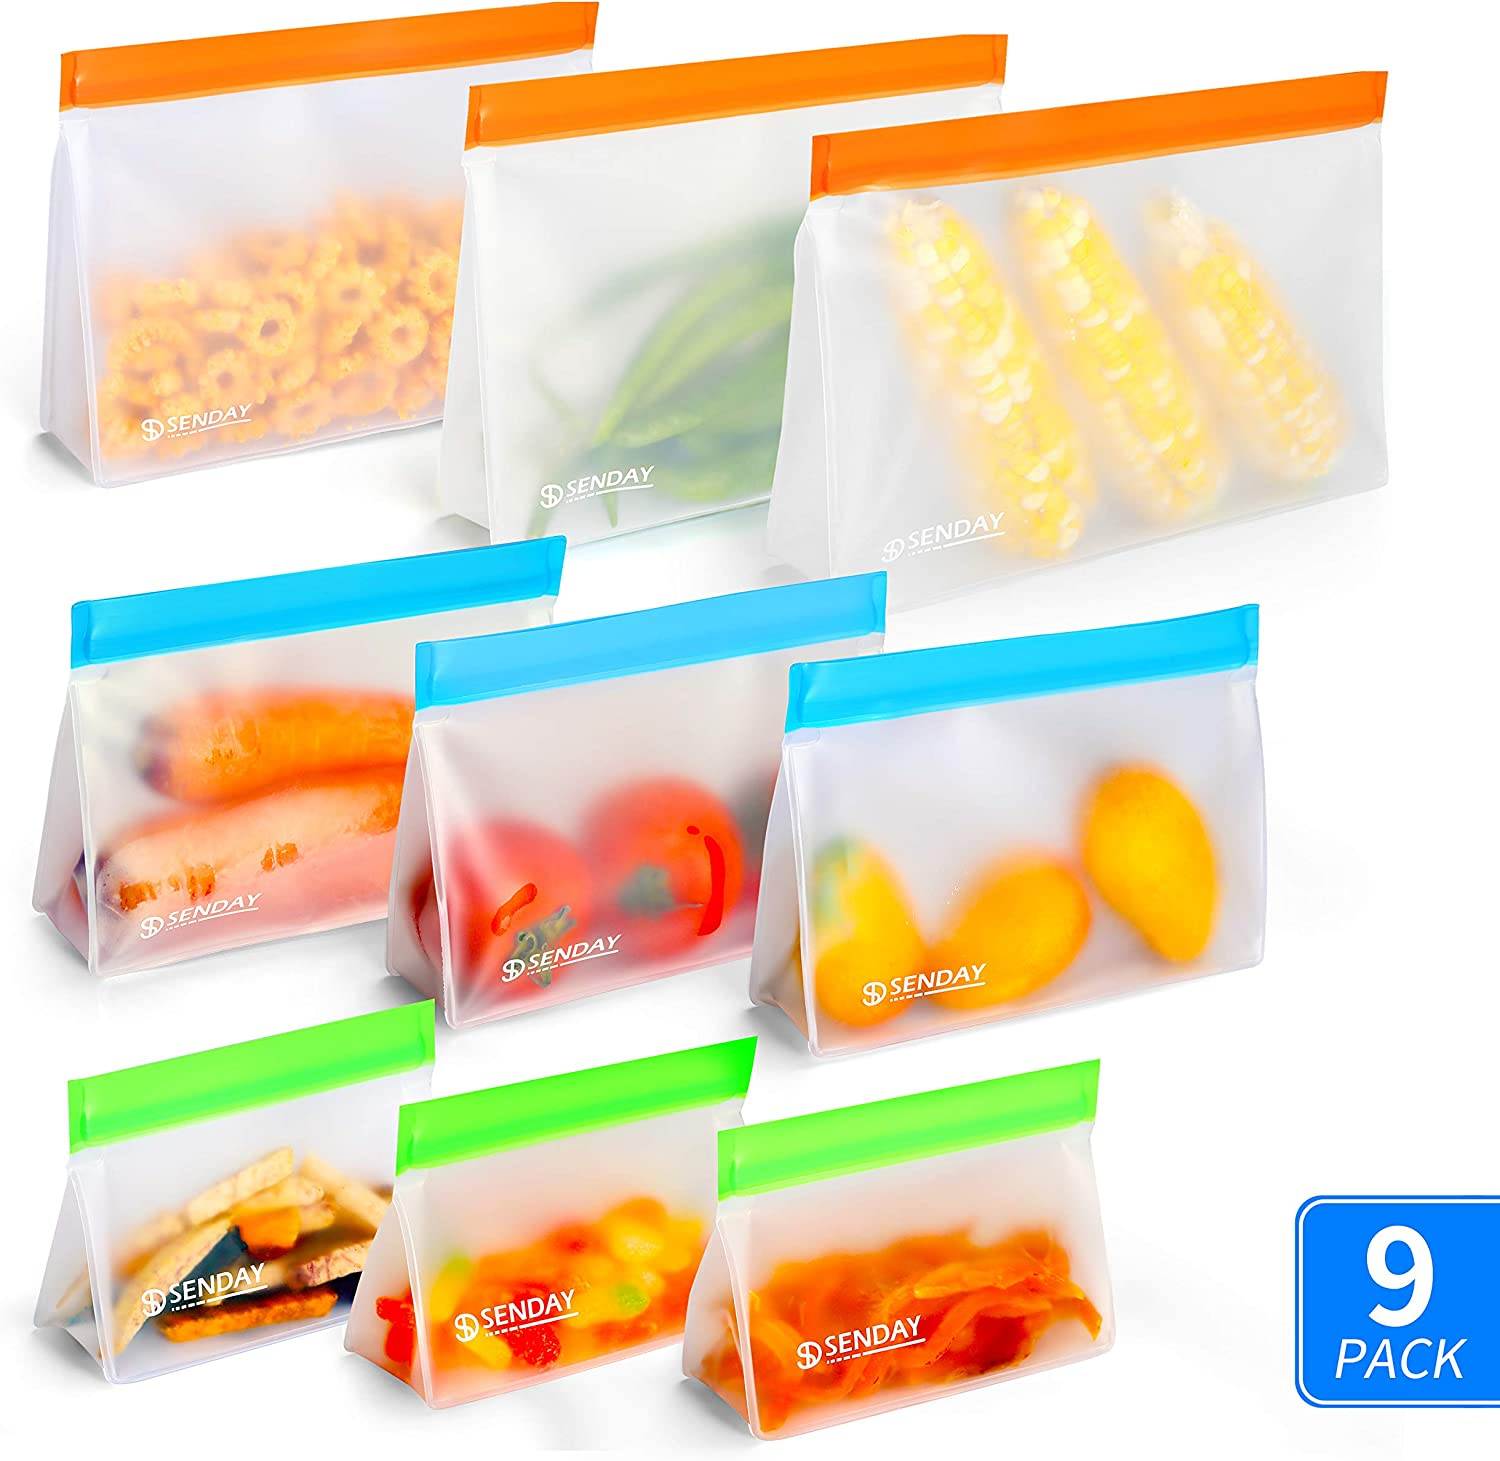 9 Pack Stand Up BPA-Free Reusable Storage Bags (3 Freezer Safe Gallon Bags, 3 Leakproof Sandwich Bags, 3 Thick Snack Bags) PEVA Ziplock Lunch Bags for Food Marinate Home Travel Fruit Cereal Organizer